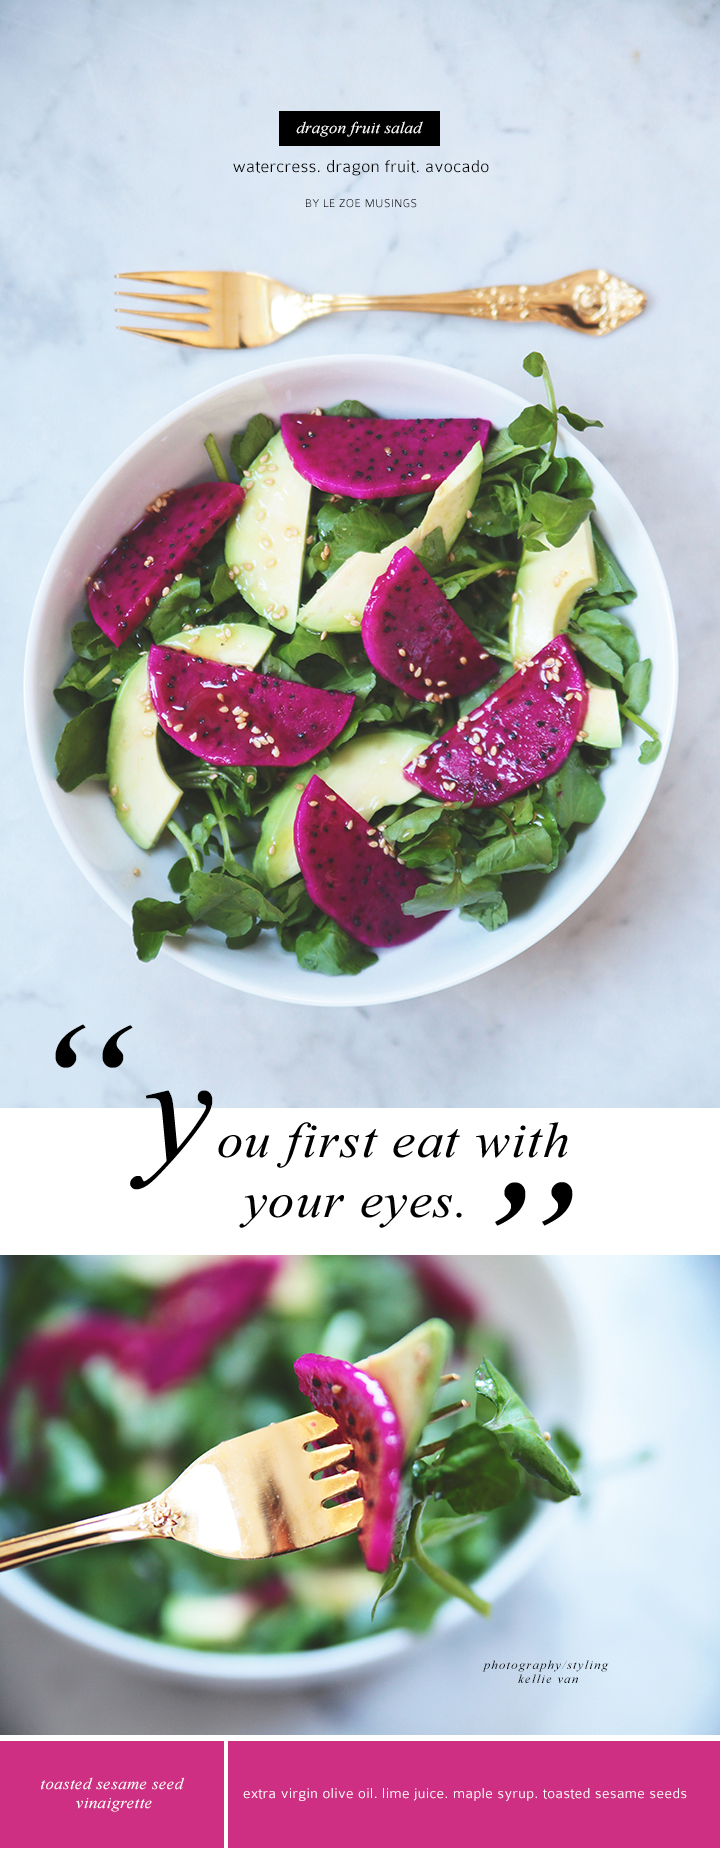 dragon fruit salad by le zoe musings